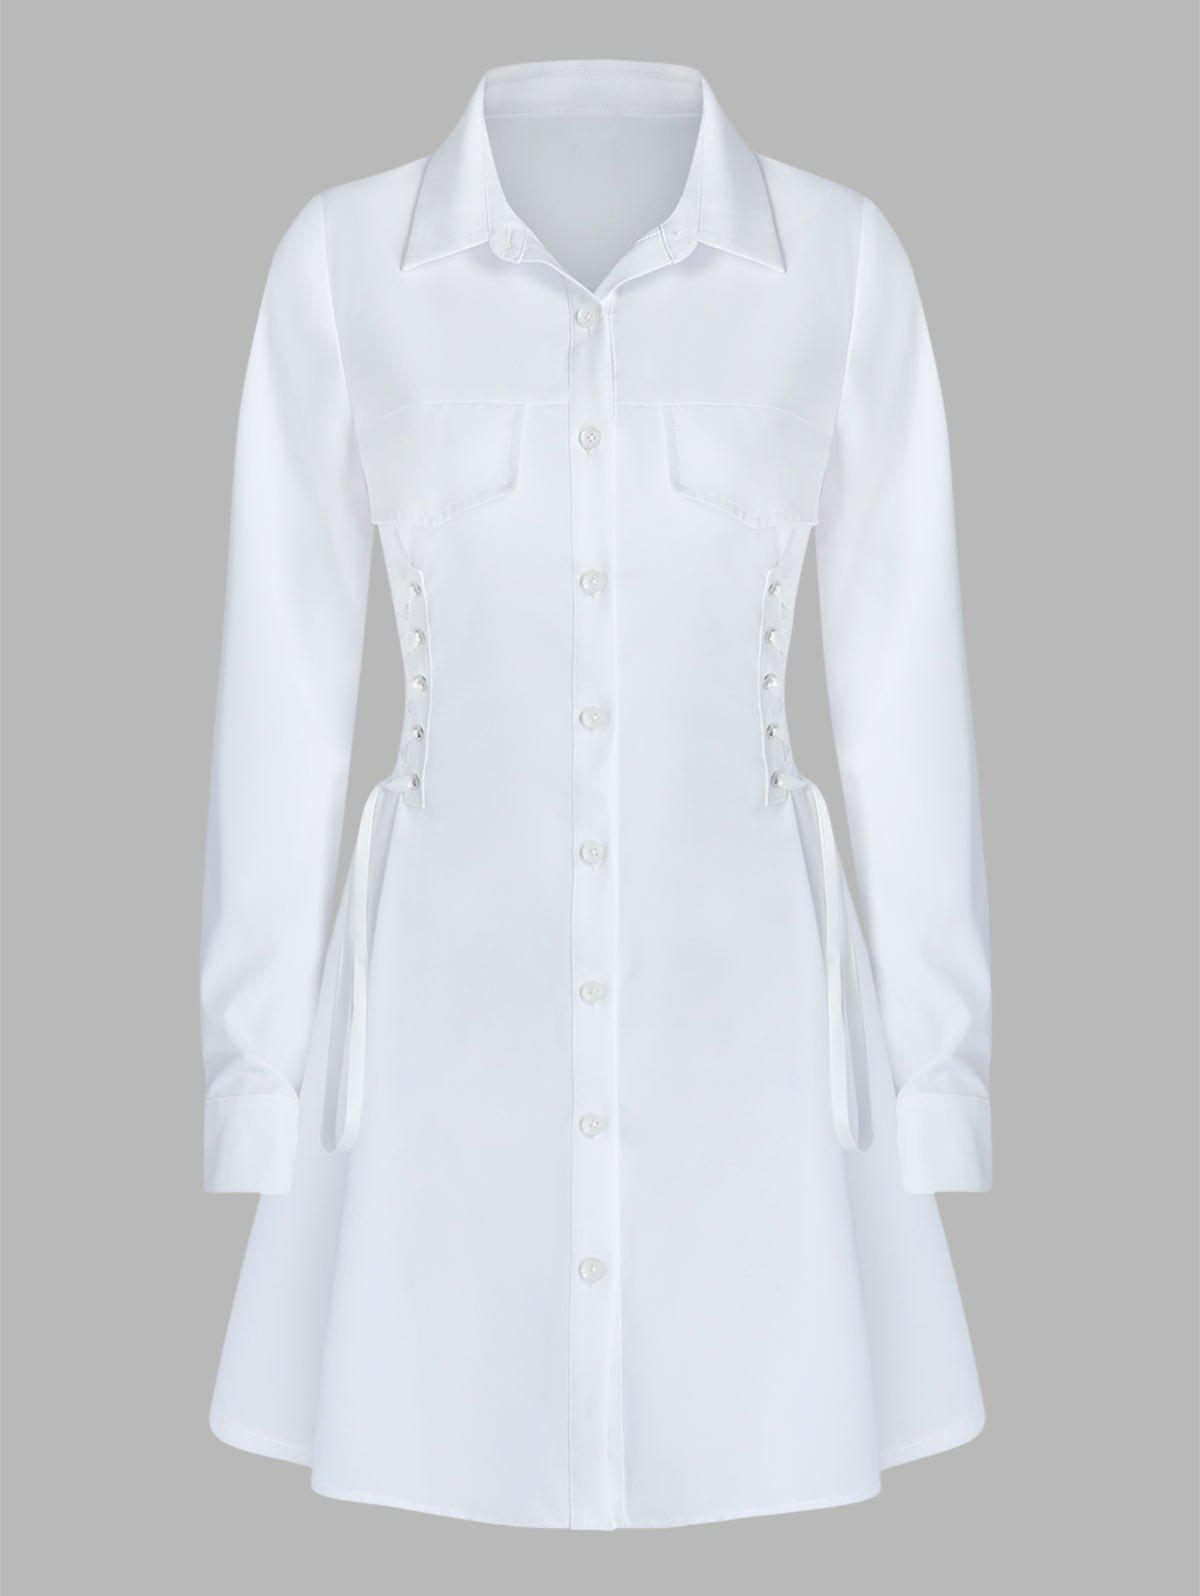 Store Long Sleeve Lace-up Button Up Shirt Dress